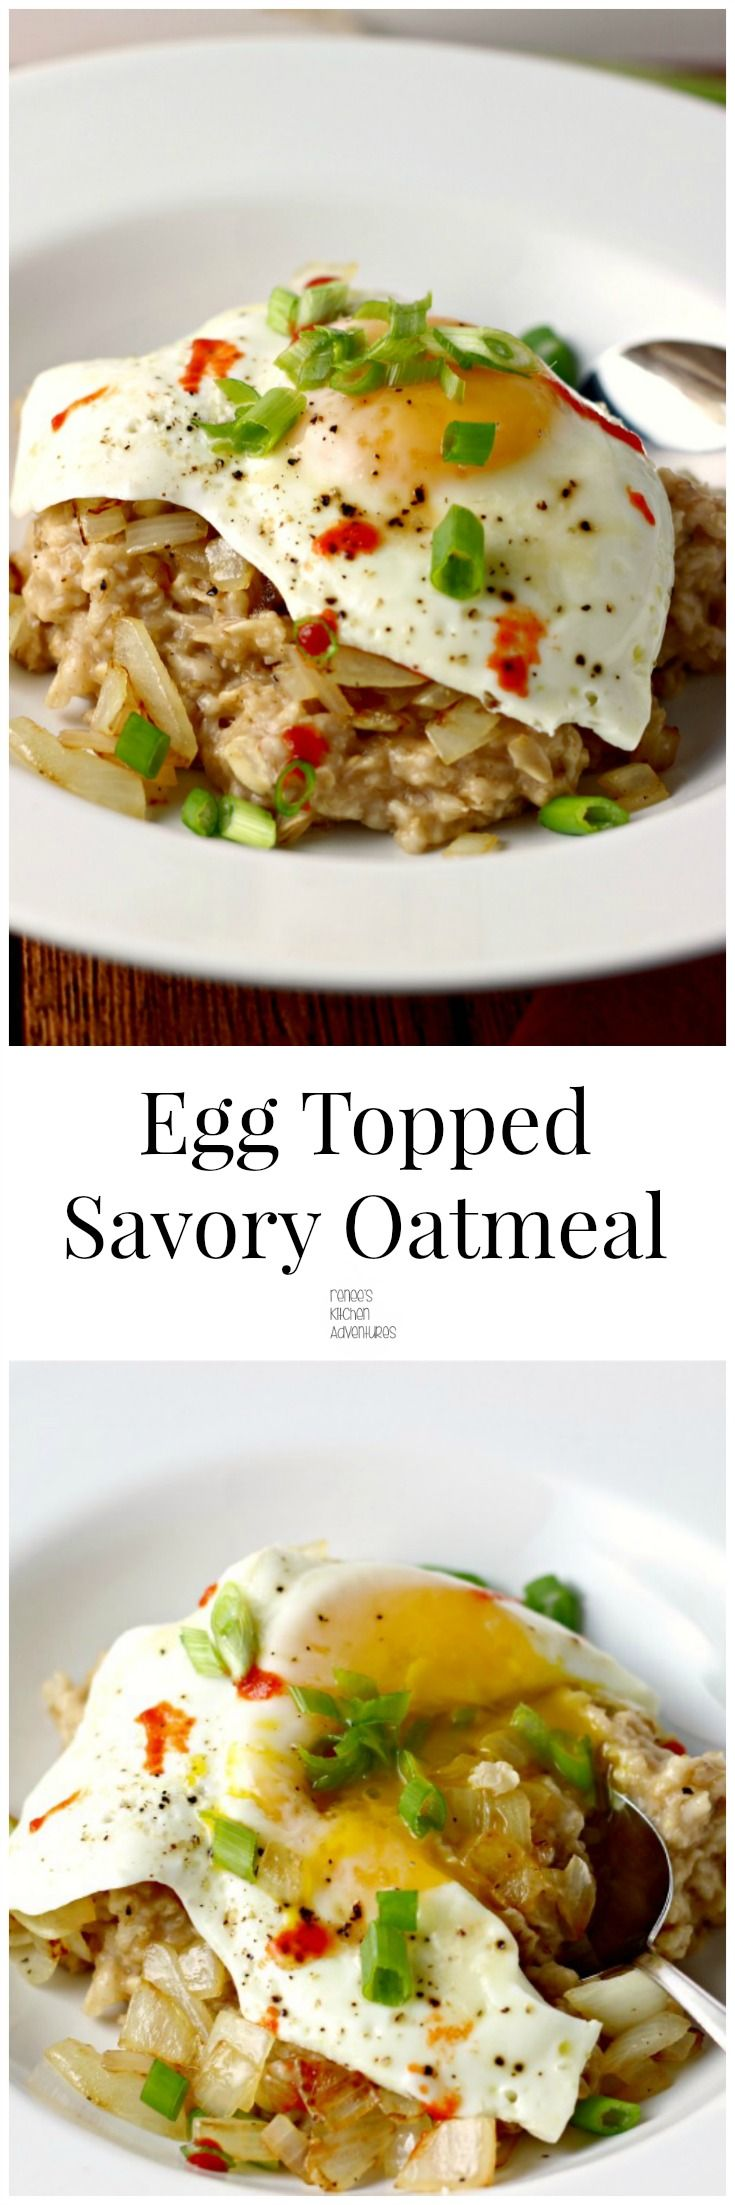 Egg-Topped Savory Oatmeal. You've got to give this a try!! Something different for breakfast, lunch or dinner!